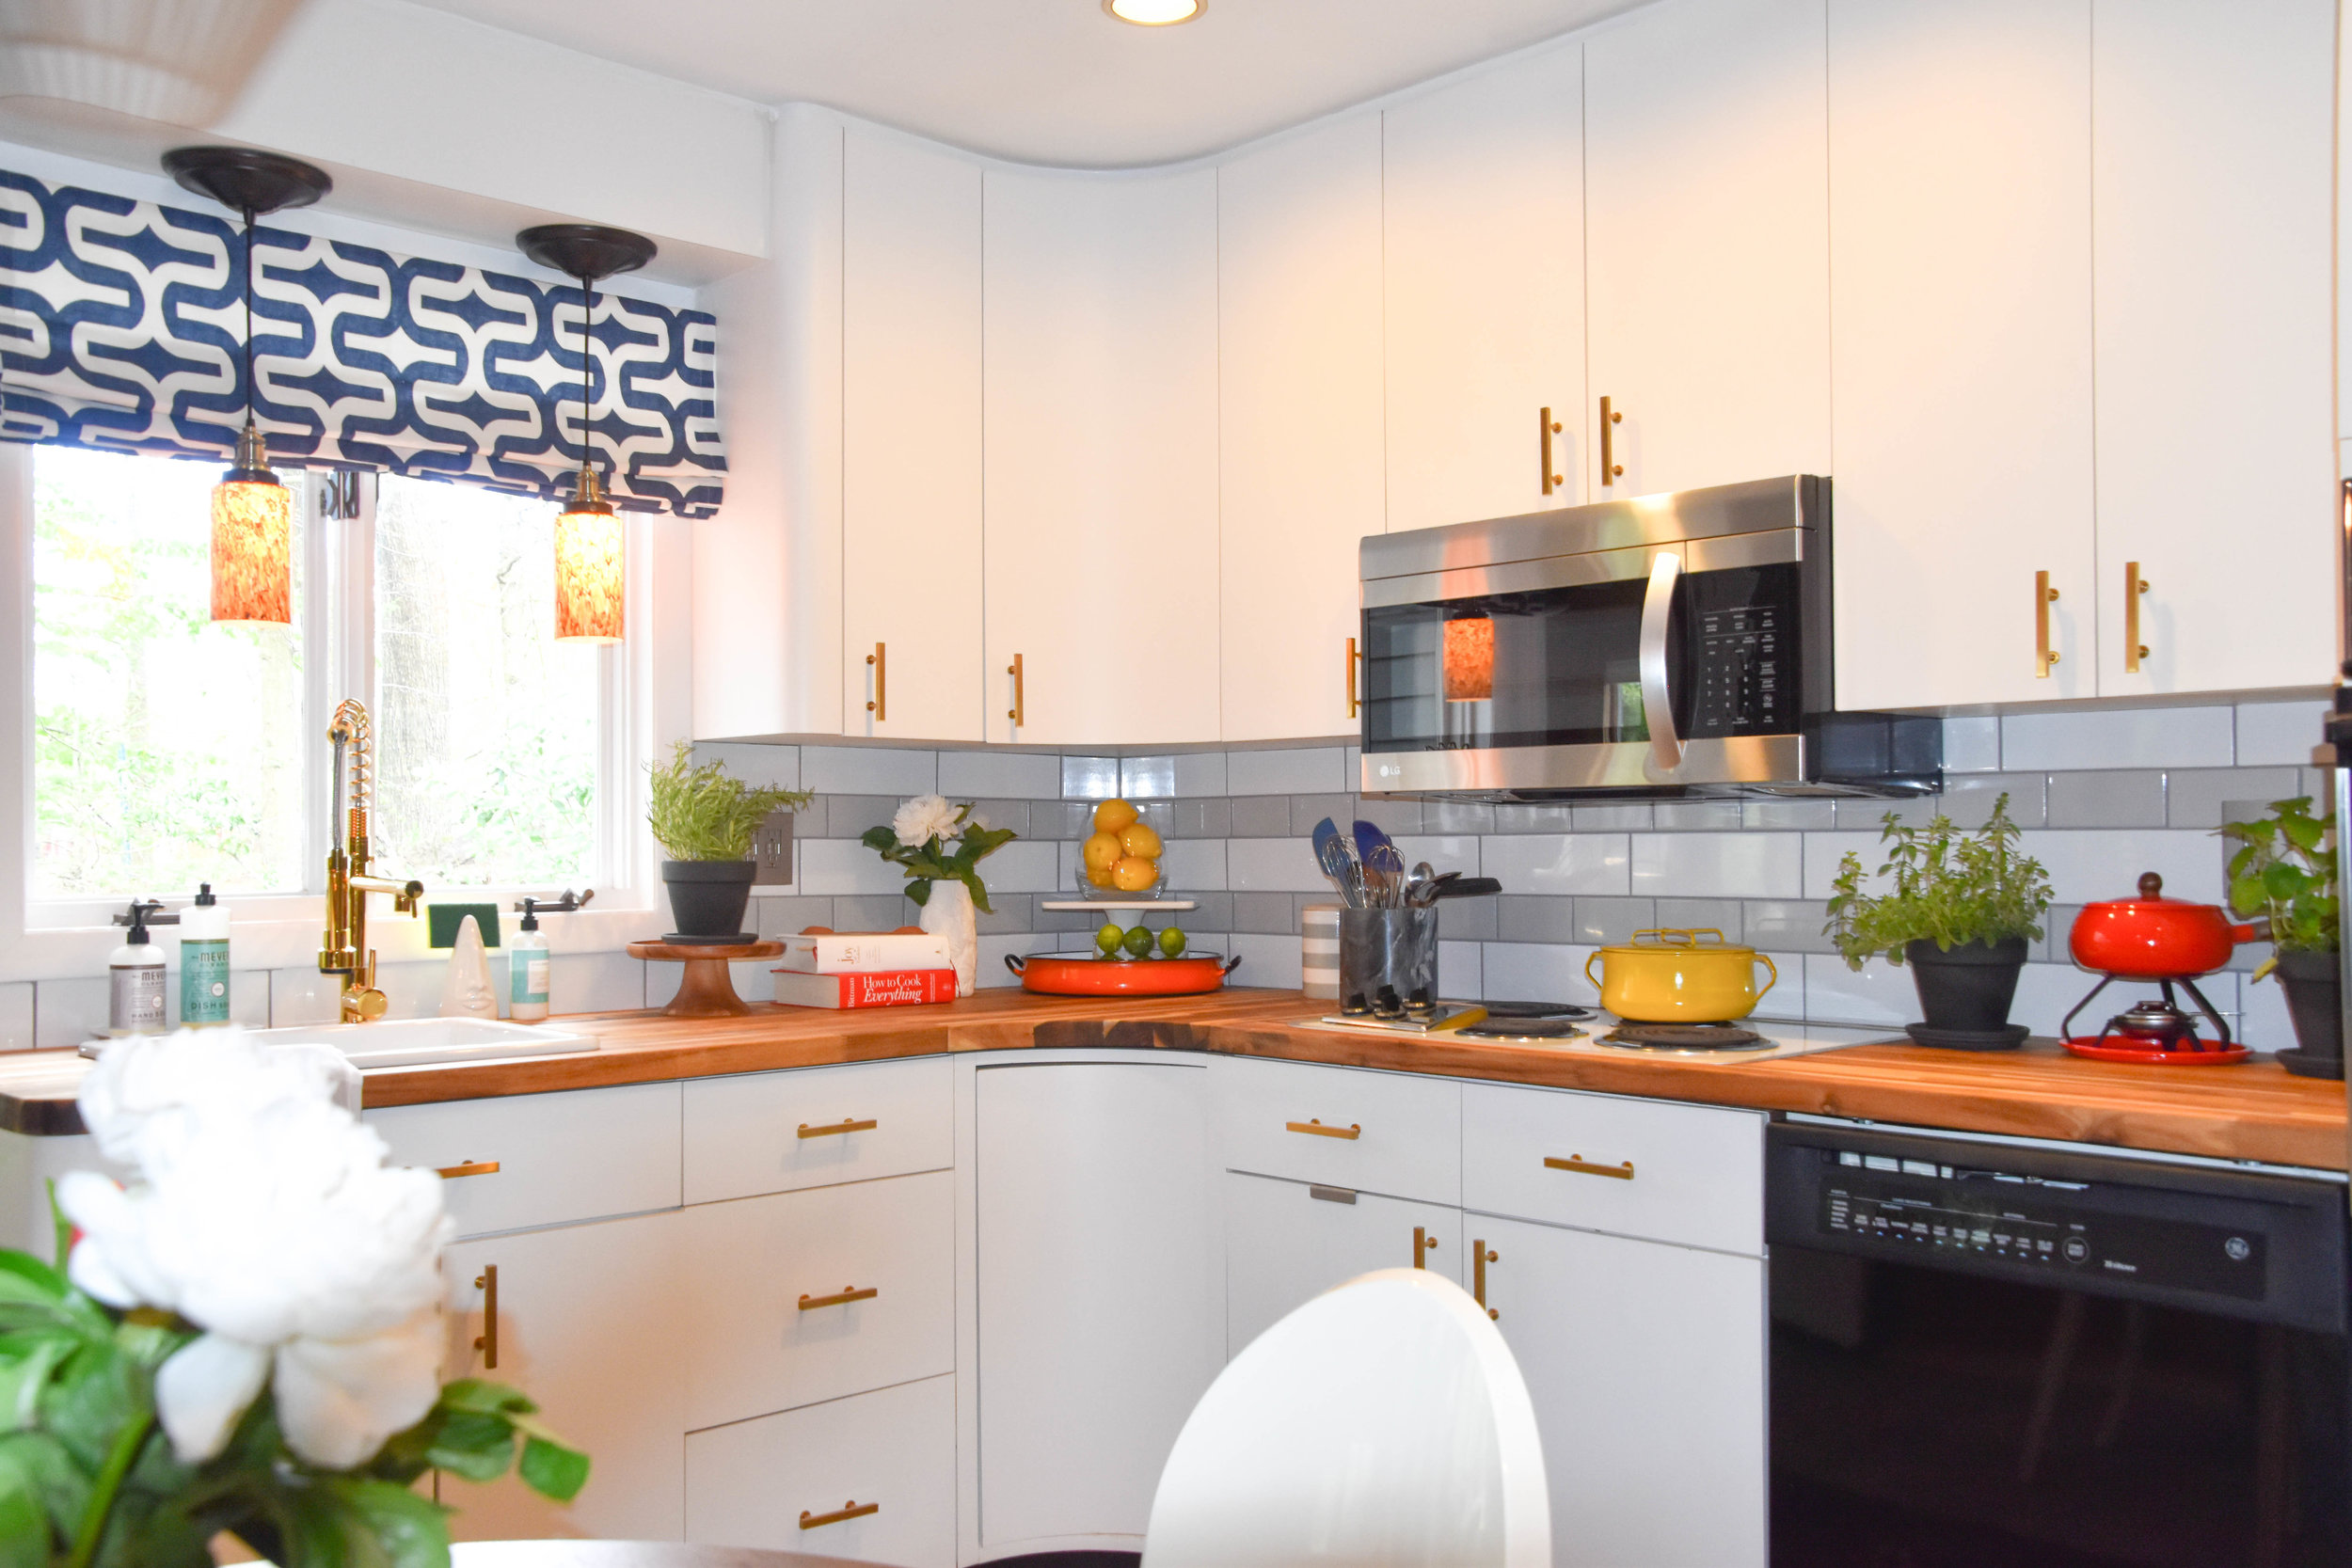 modern eclectic vintage glam d.i.y. kitchen remodel pendant light therathproject